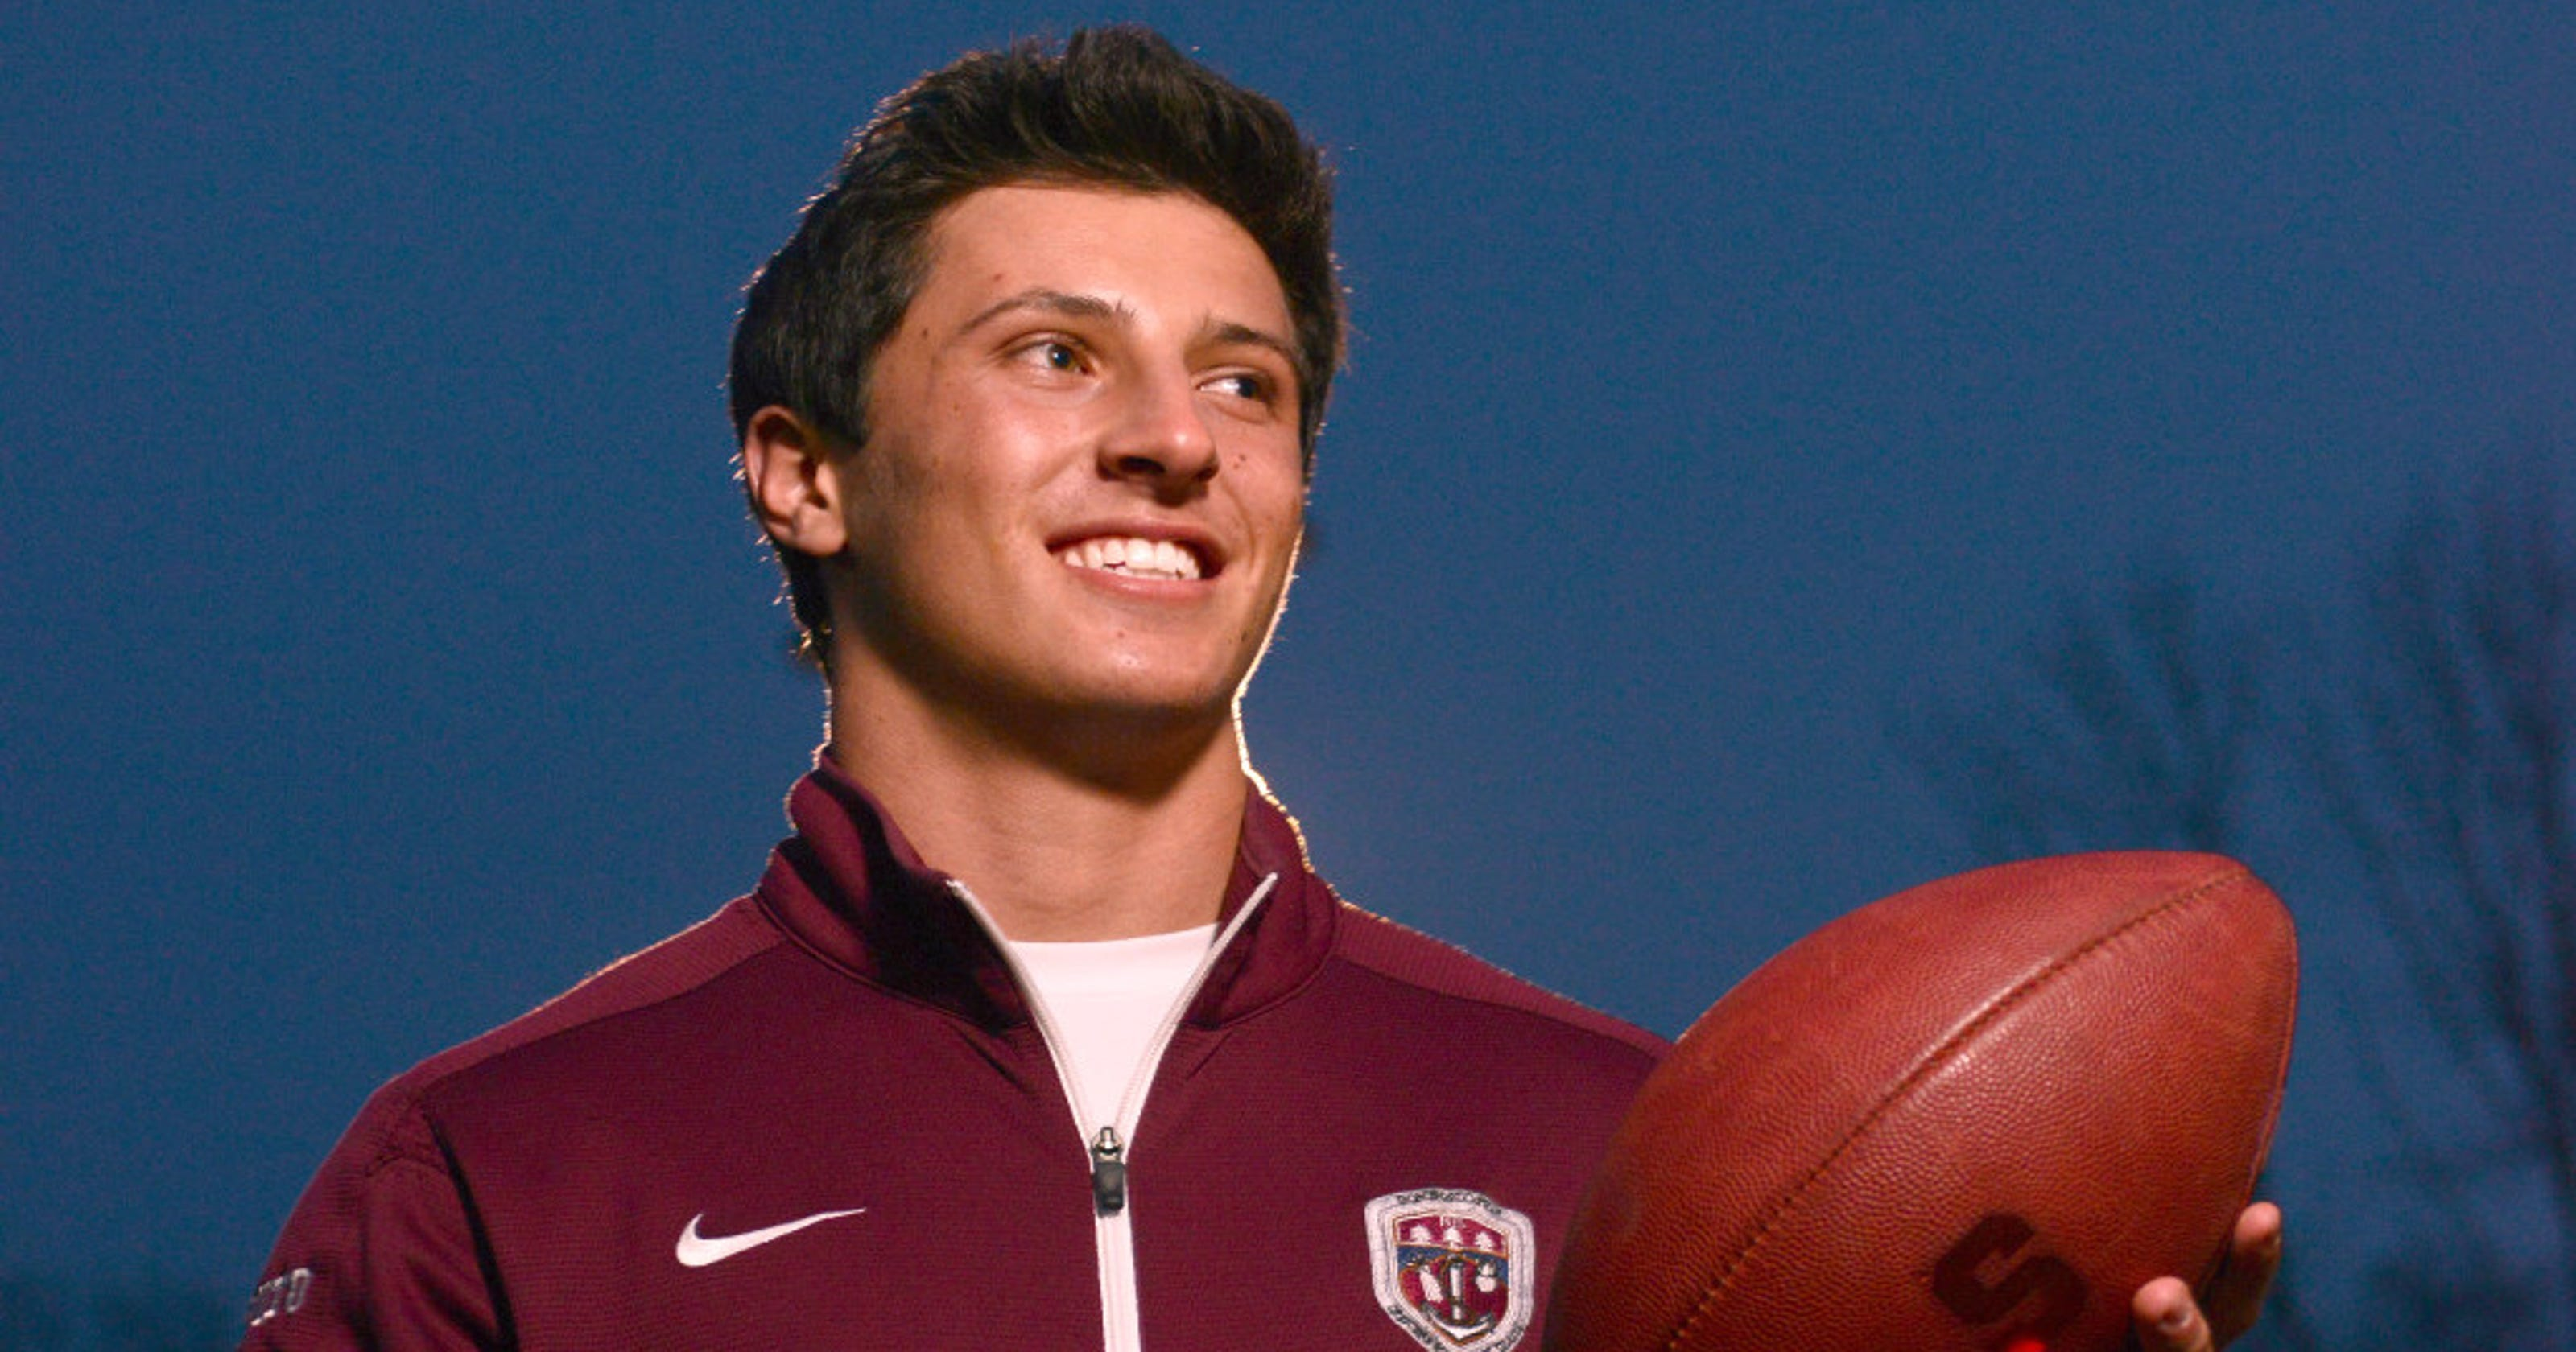 don bosco s devito has his football life well in hand